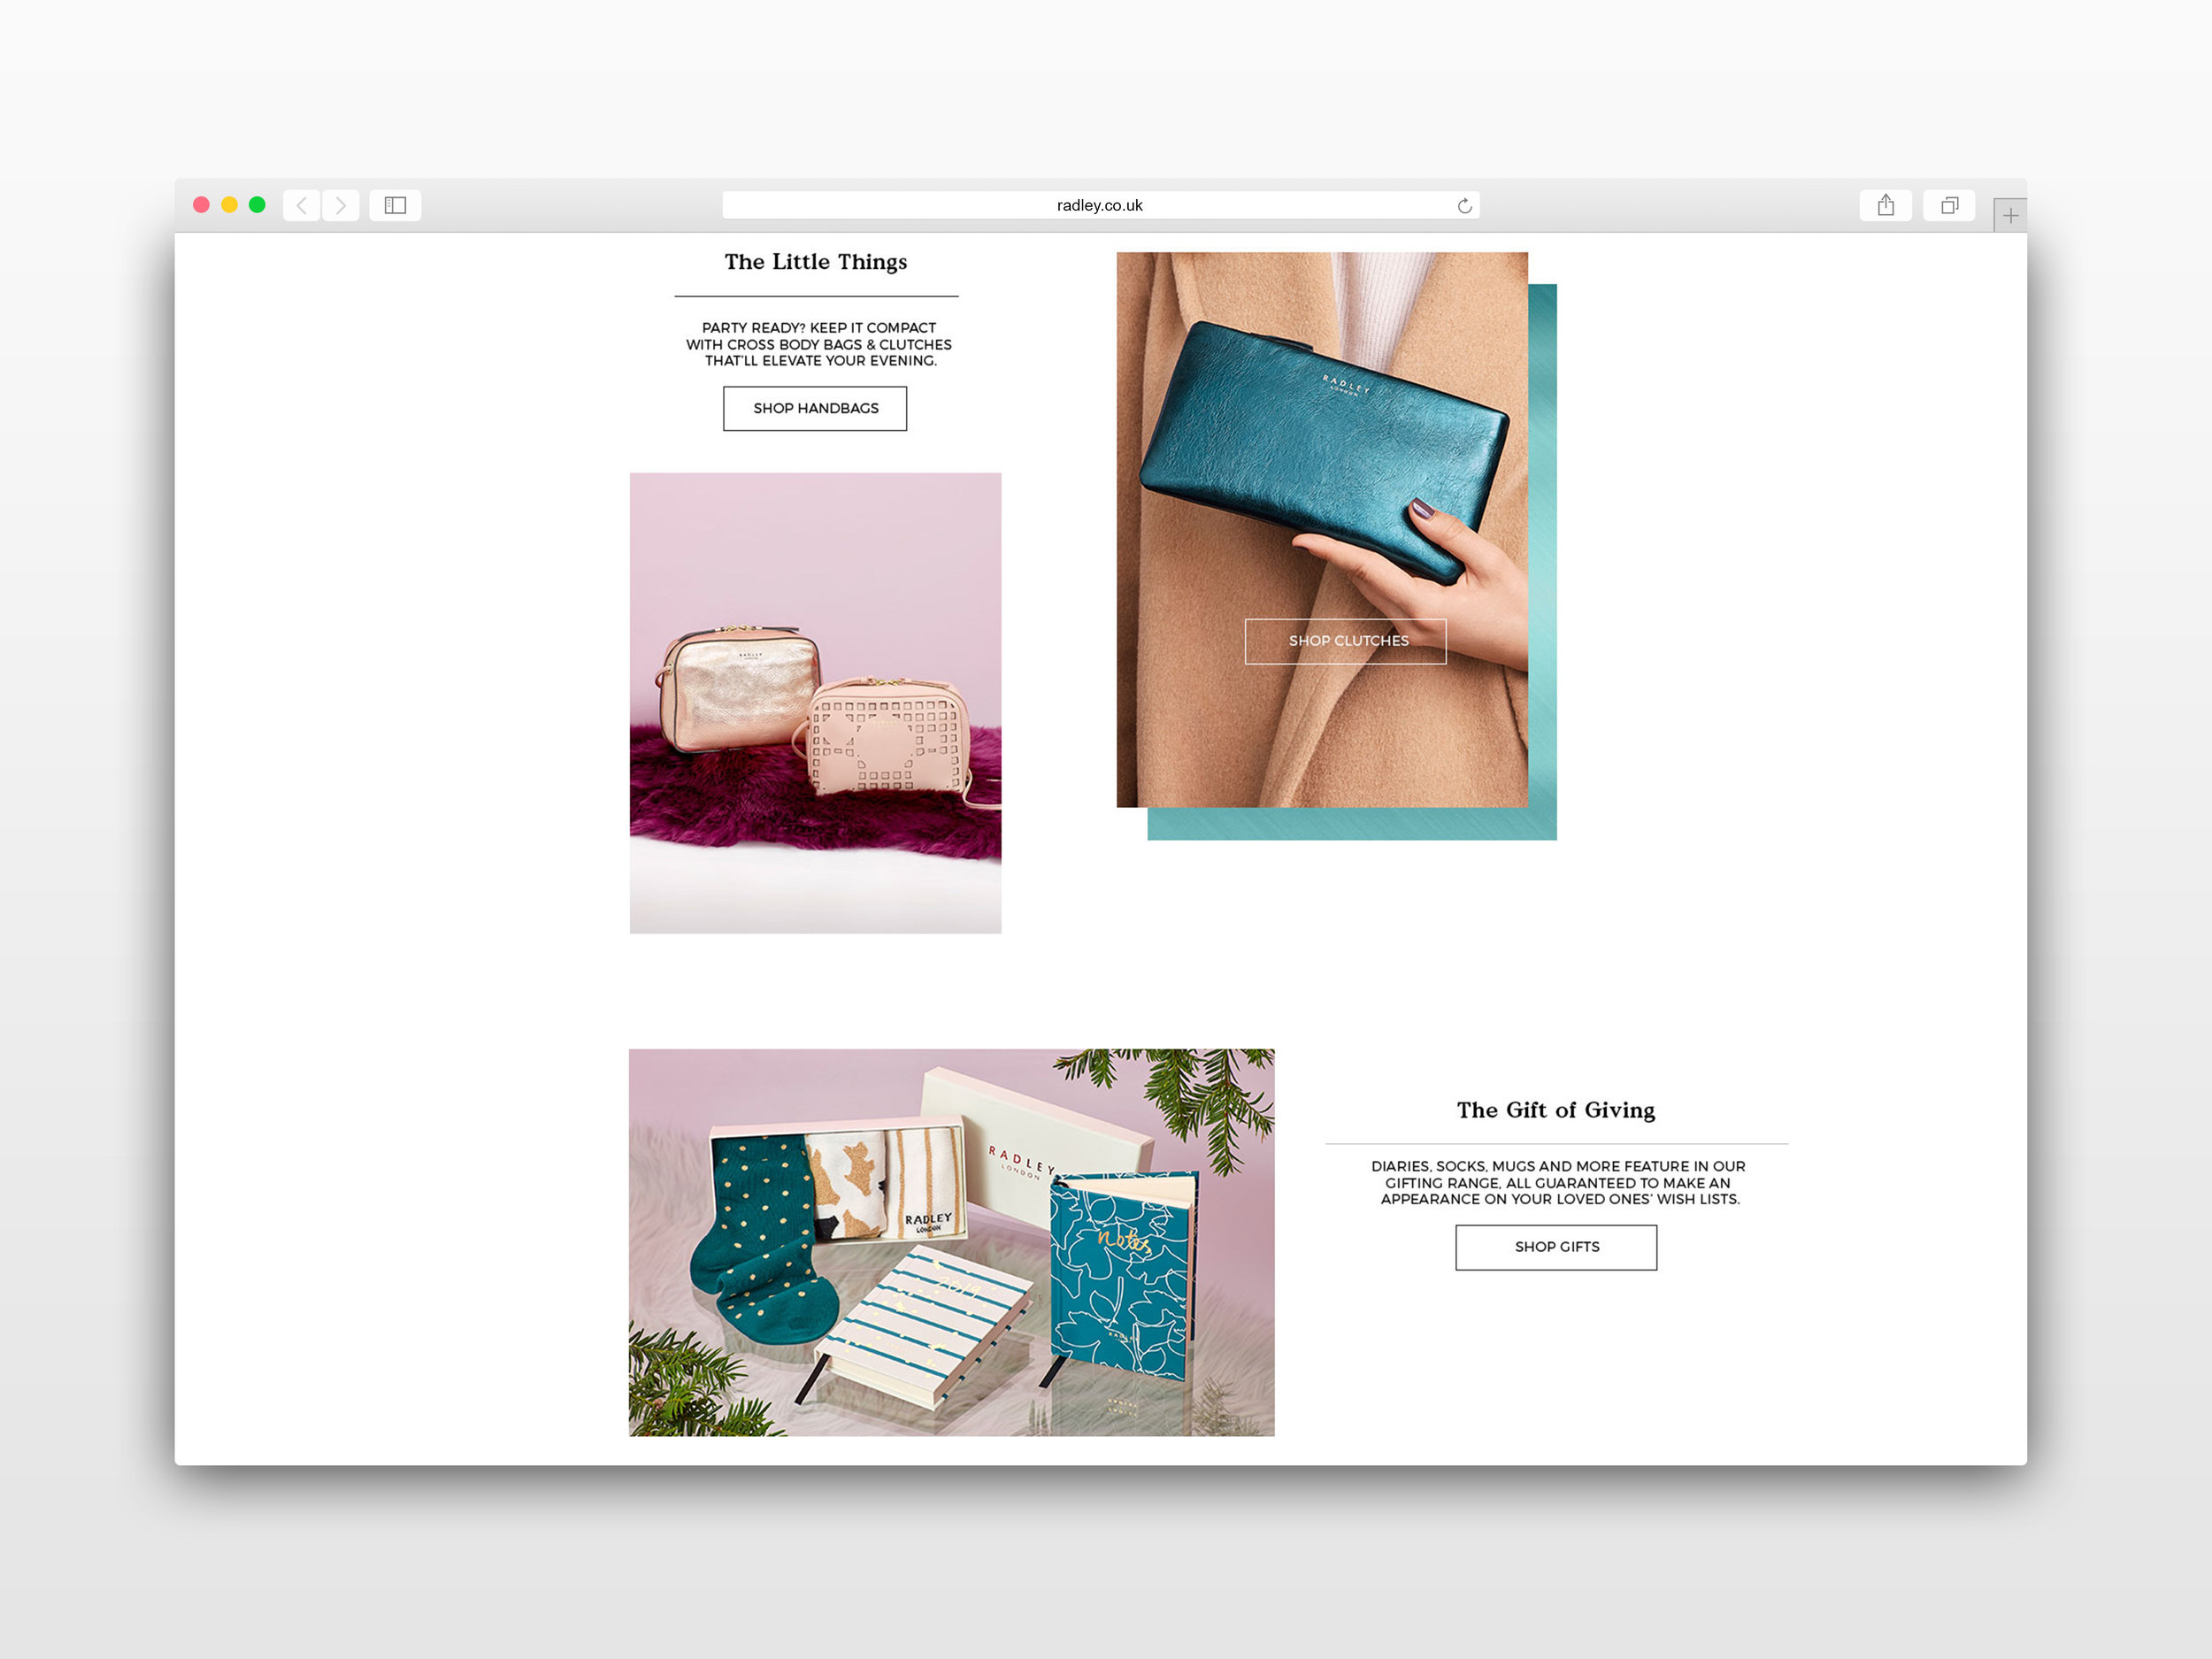 Radley Christmas 2018 • Website Design - Wireframe and visual layouts for the radley.co.uk re-design; rolling out Christmas campaign imagery across all device sizes.